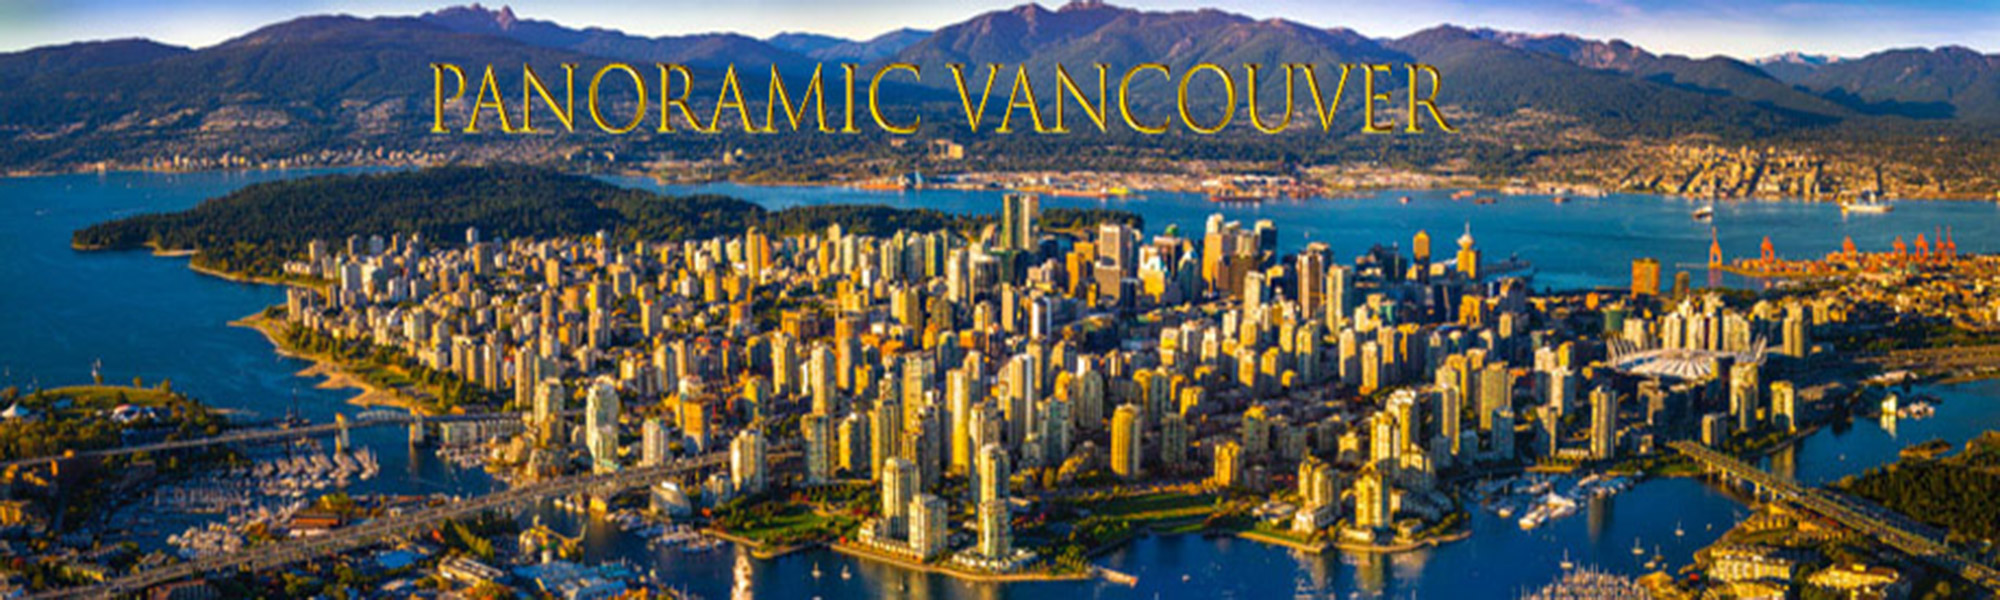 panoramic vancouver